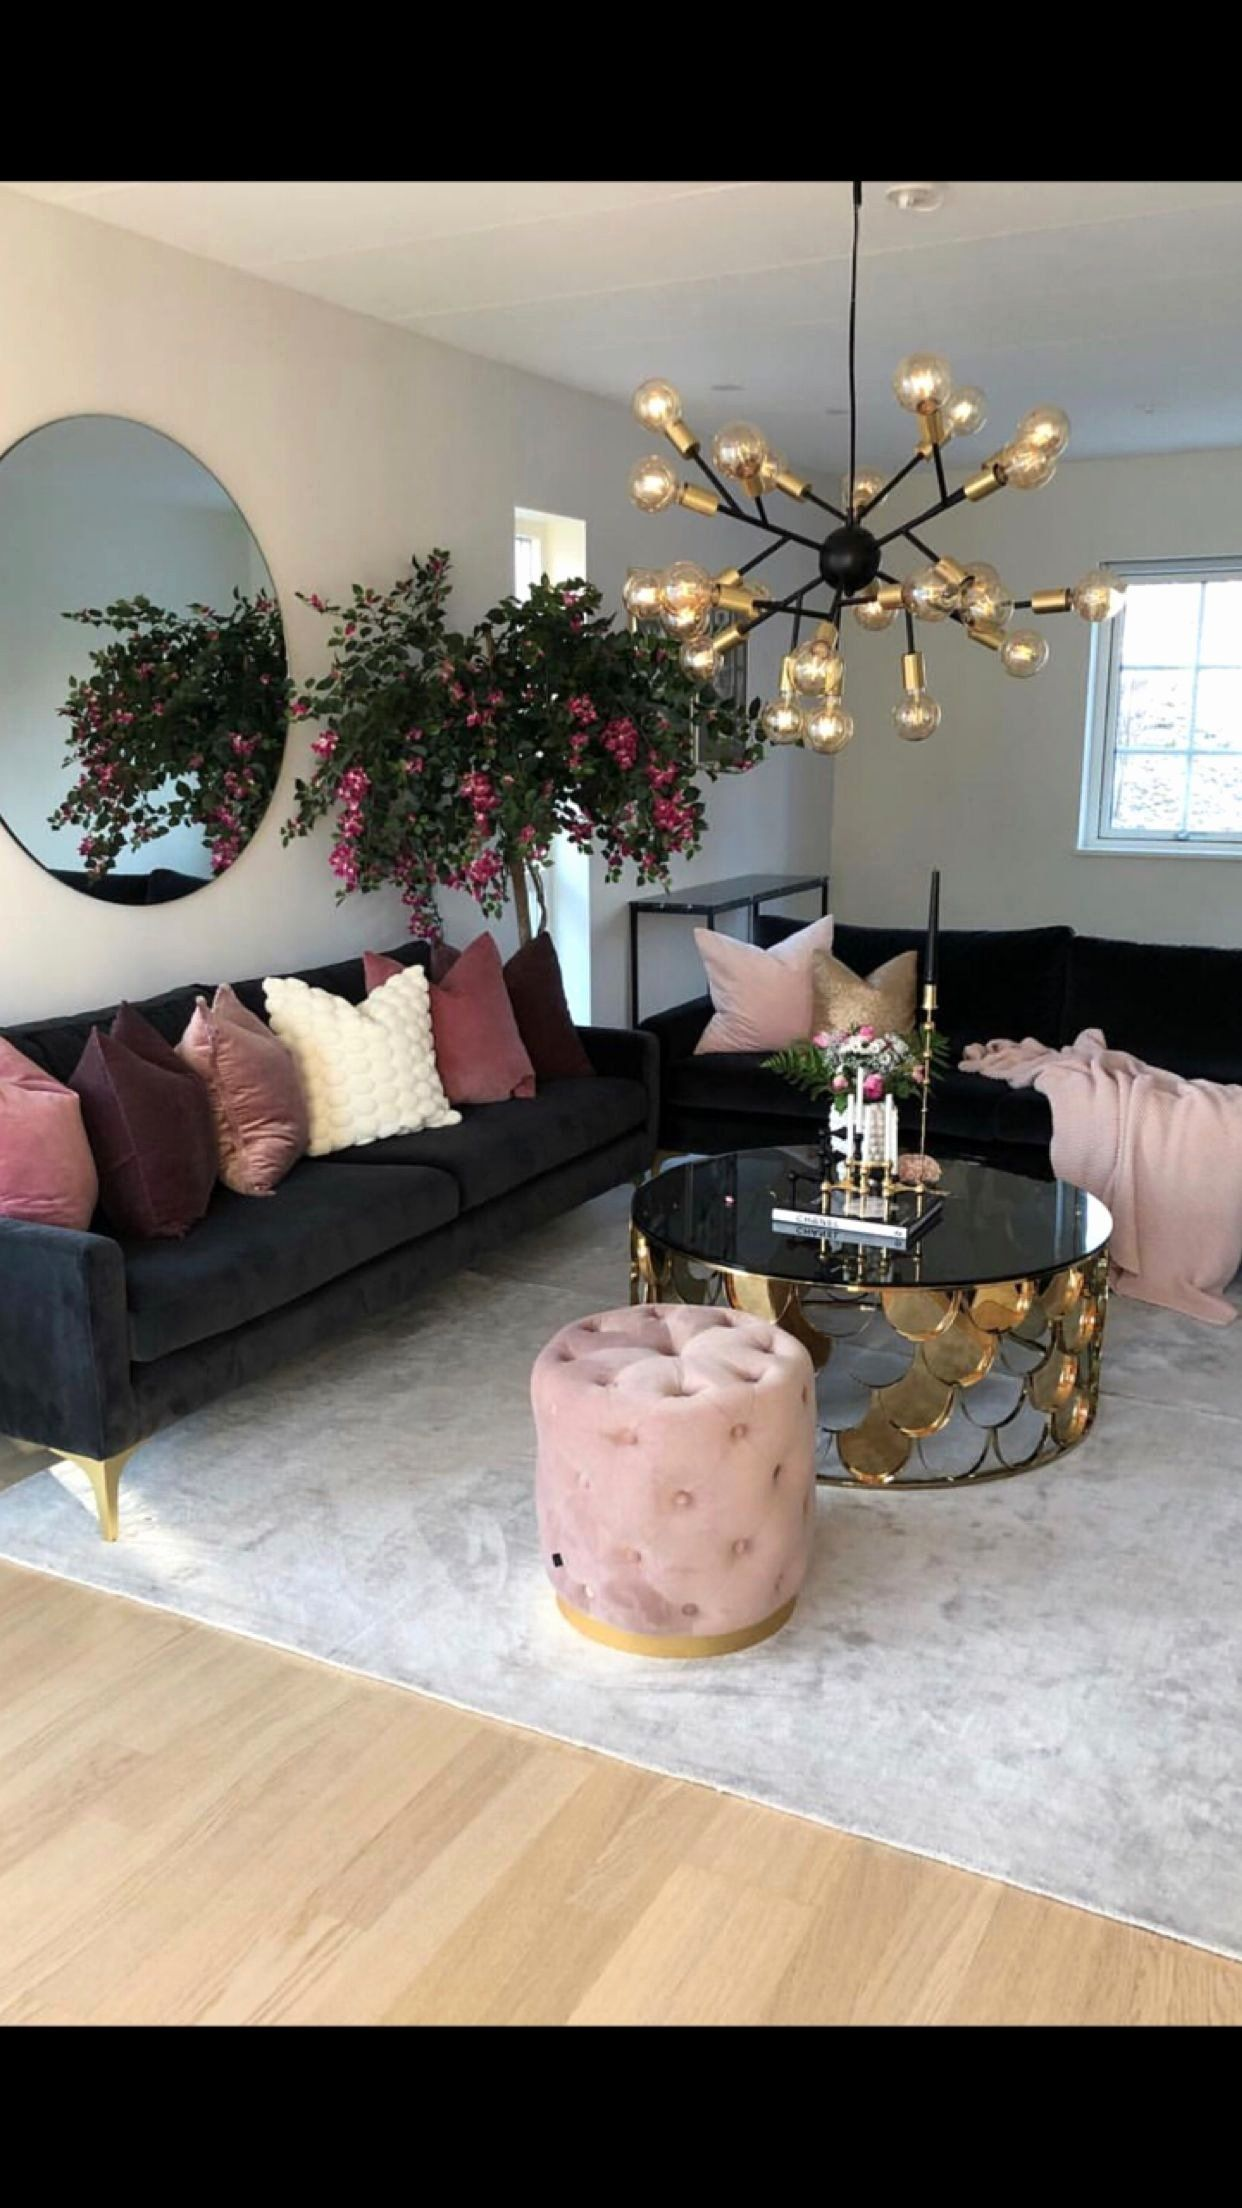 Black And Tan Living Room Fresh Idea For Decorating An Apartment With Tan Walls Small Living Room Decor Black Sofa Living Room Living Room Decor Apartment Tan and black living room